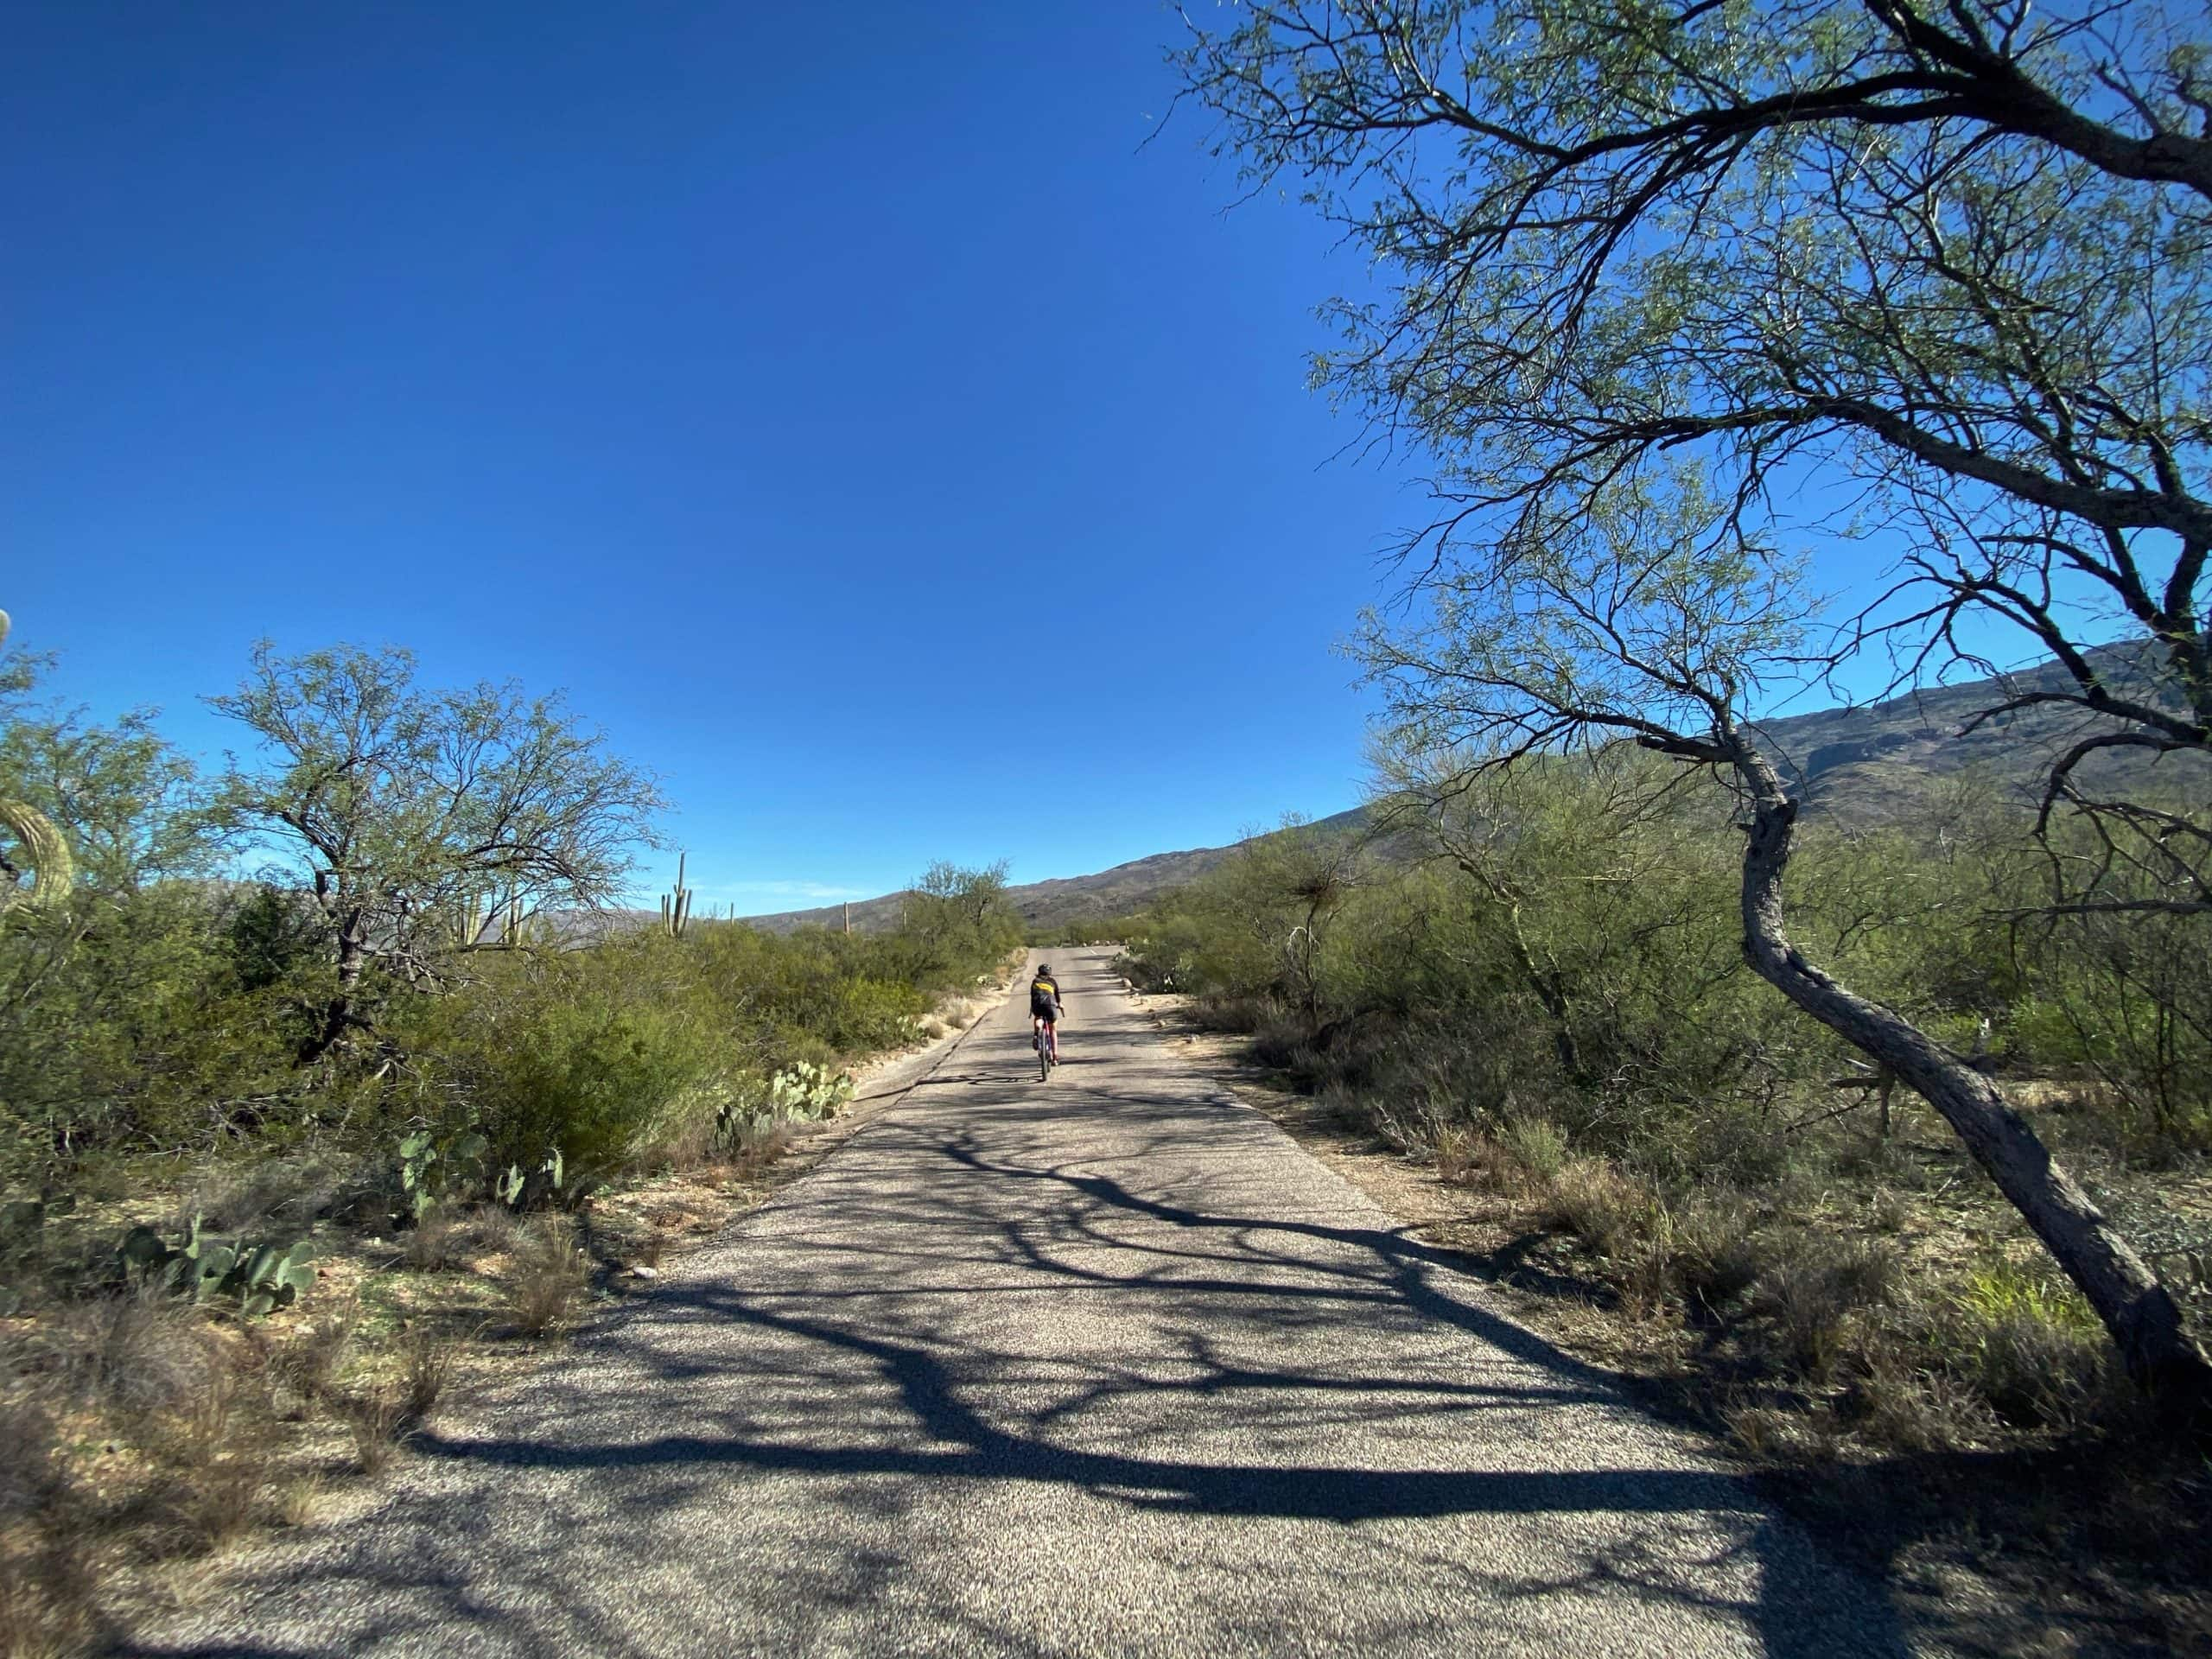 Cyclist on the Cactus Forest road (paved) in Saguaro National Park (east) in Tucson, Arizona.